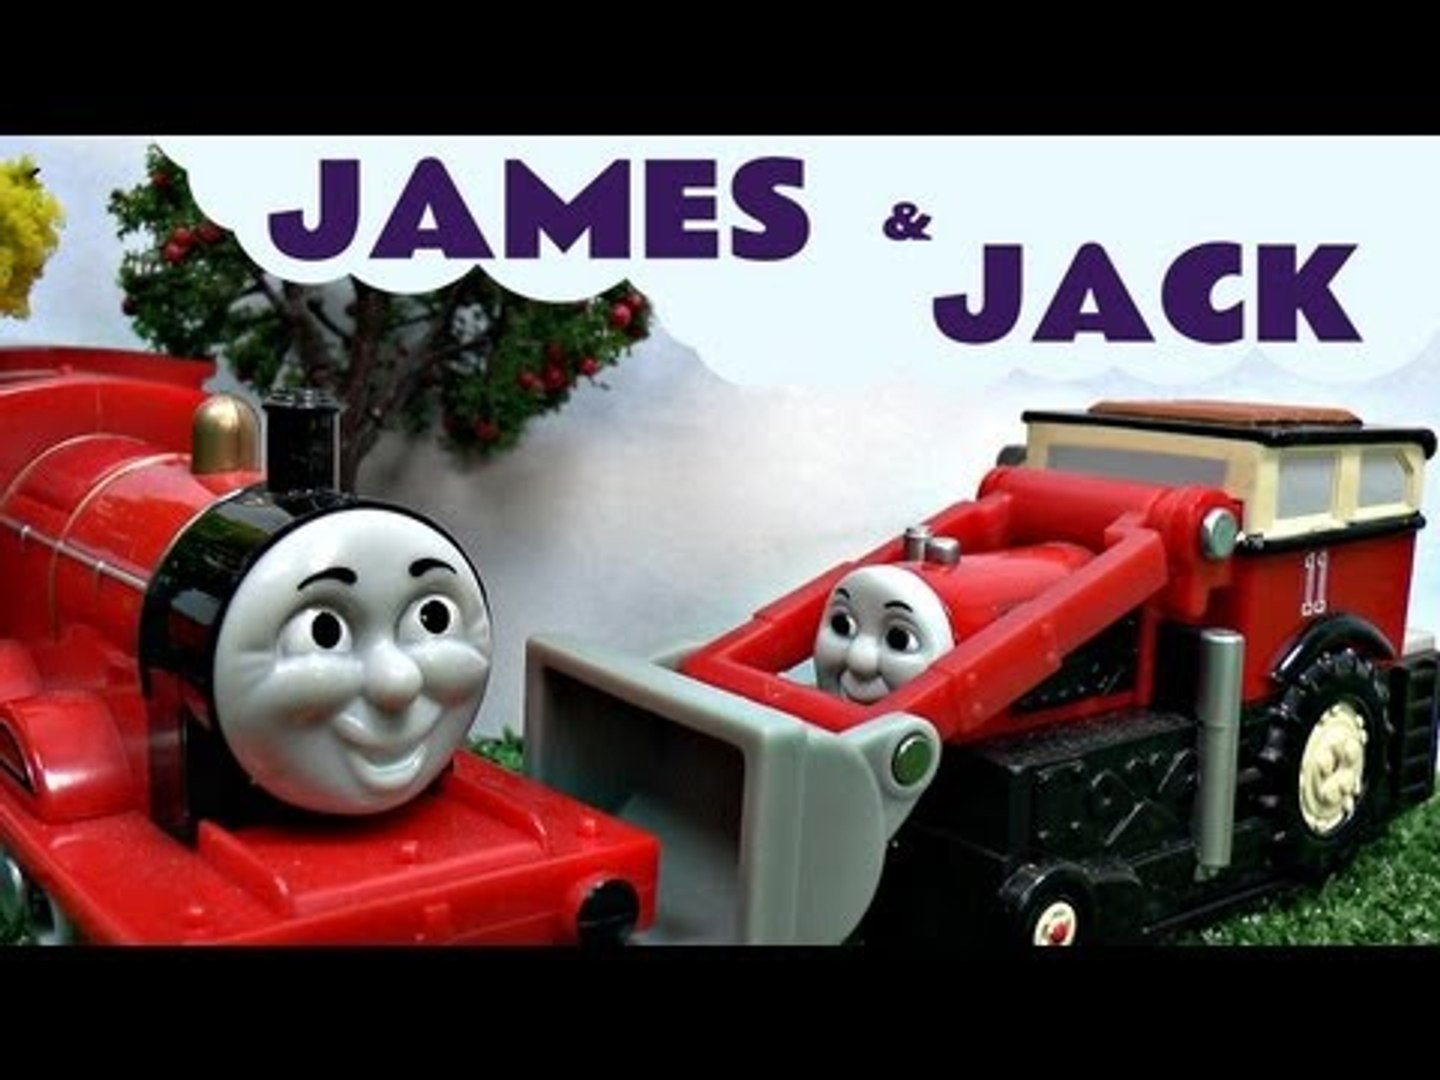 James Jack Percy Billy Elizabeth Thomas & Friends Trackmaster Sodor Kids Toy Train Set